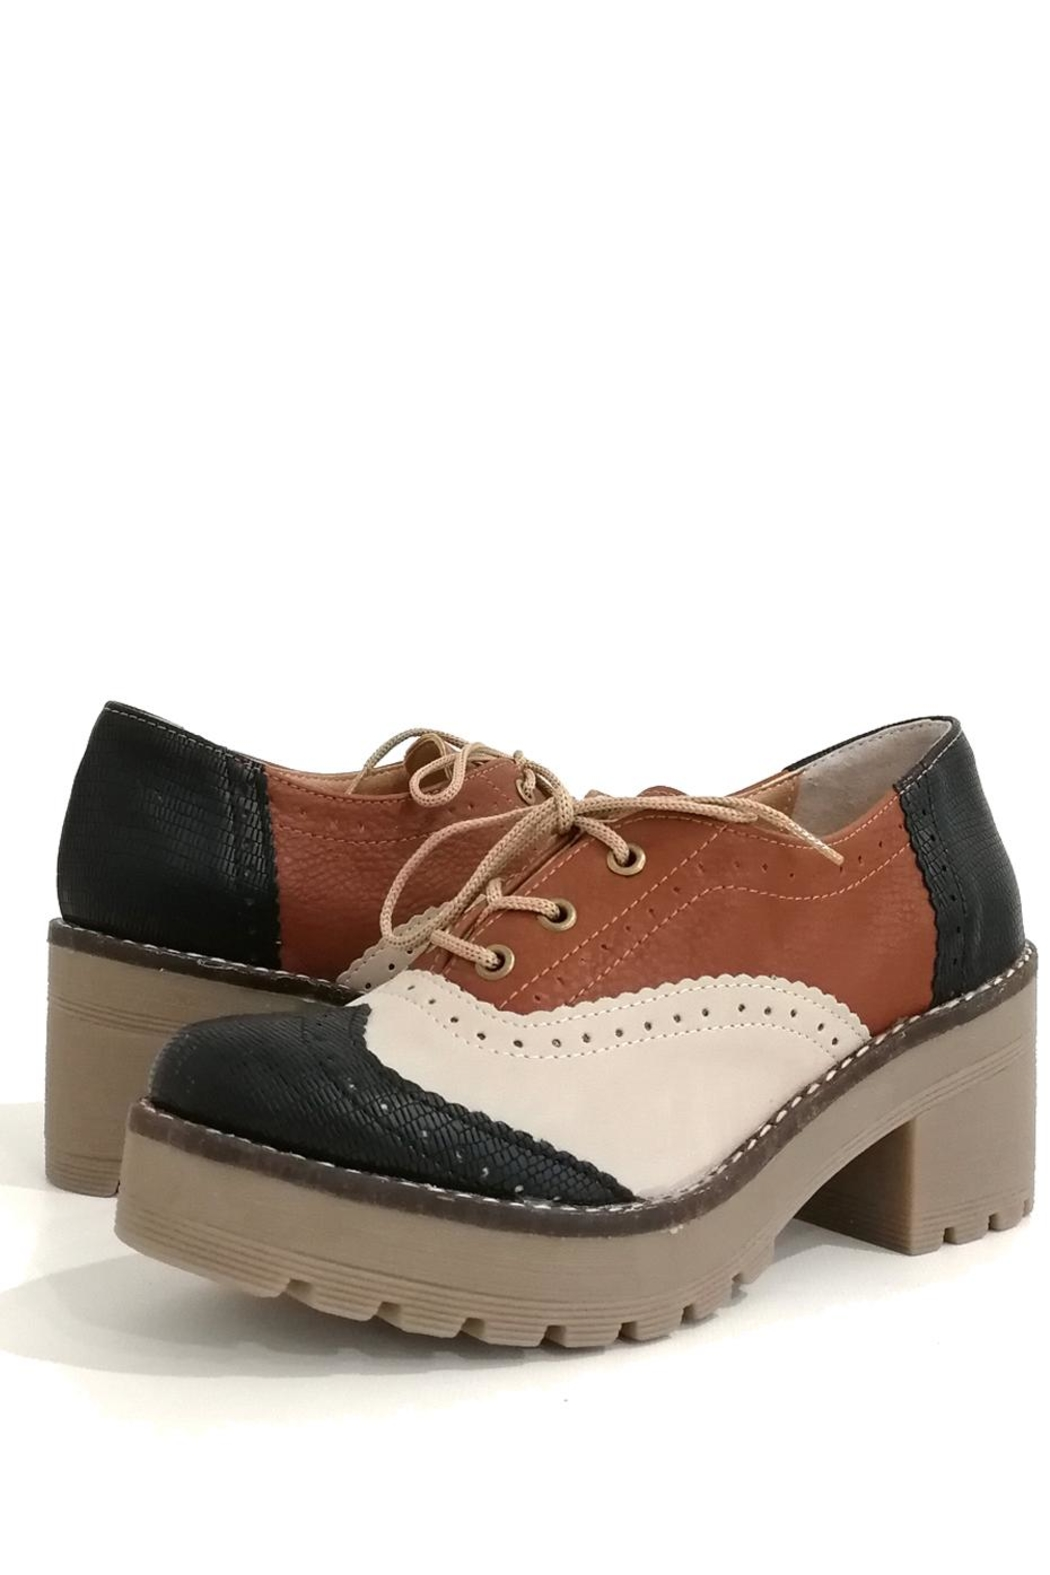 MIYE COLLAZZO Hope Shoes - Side Cropped Image